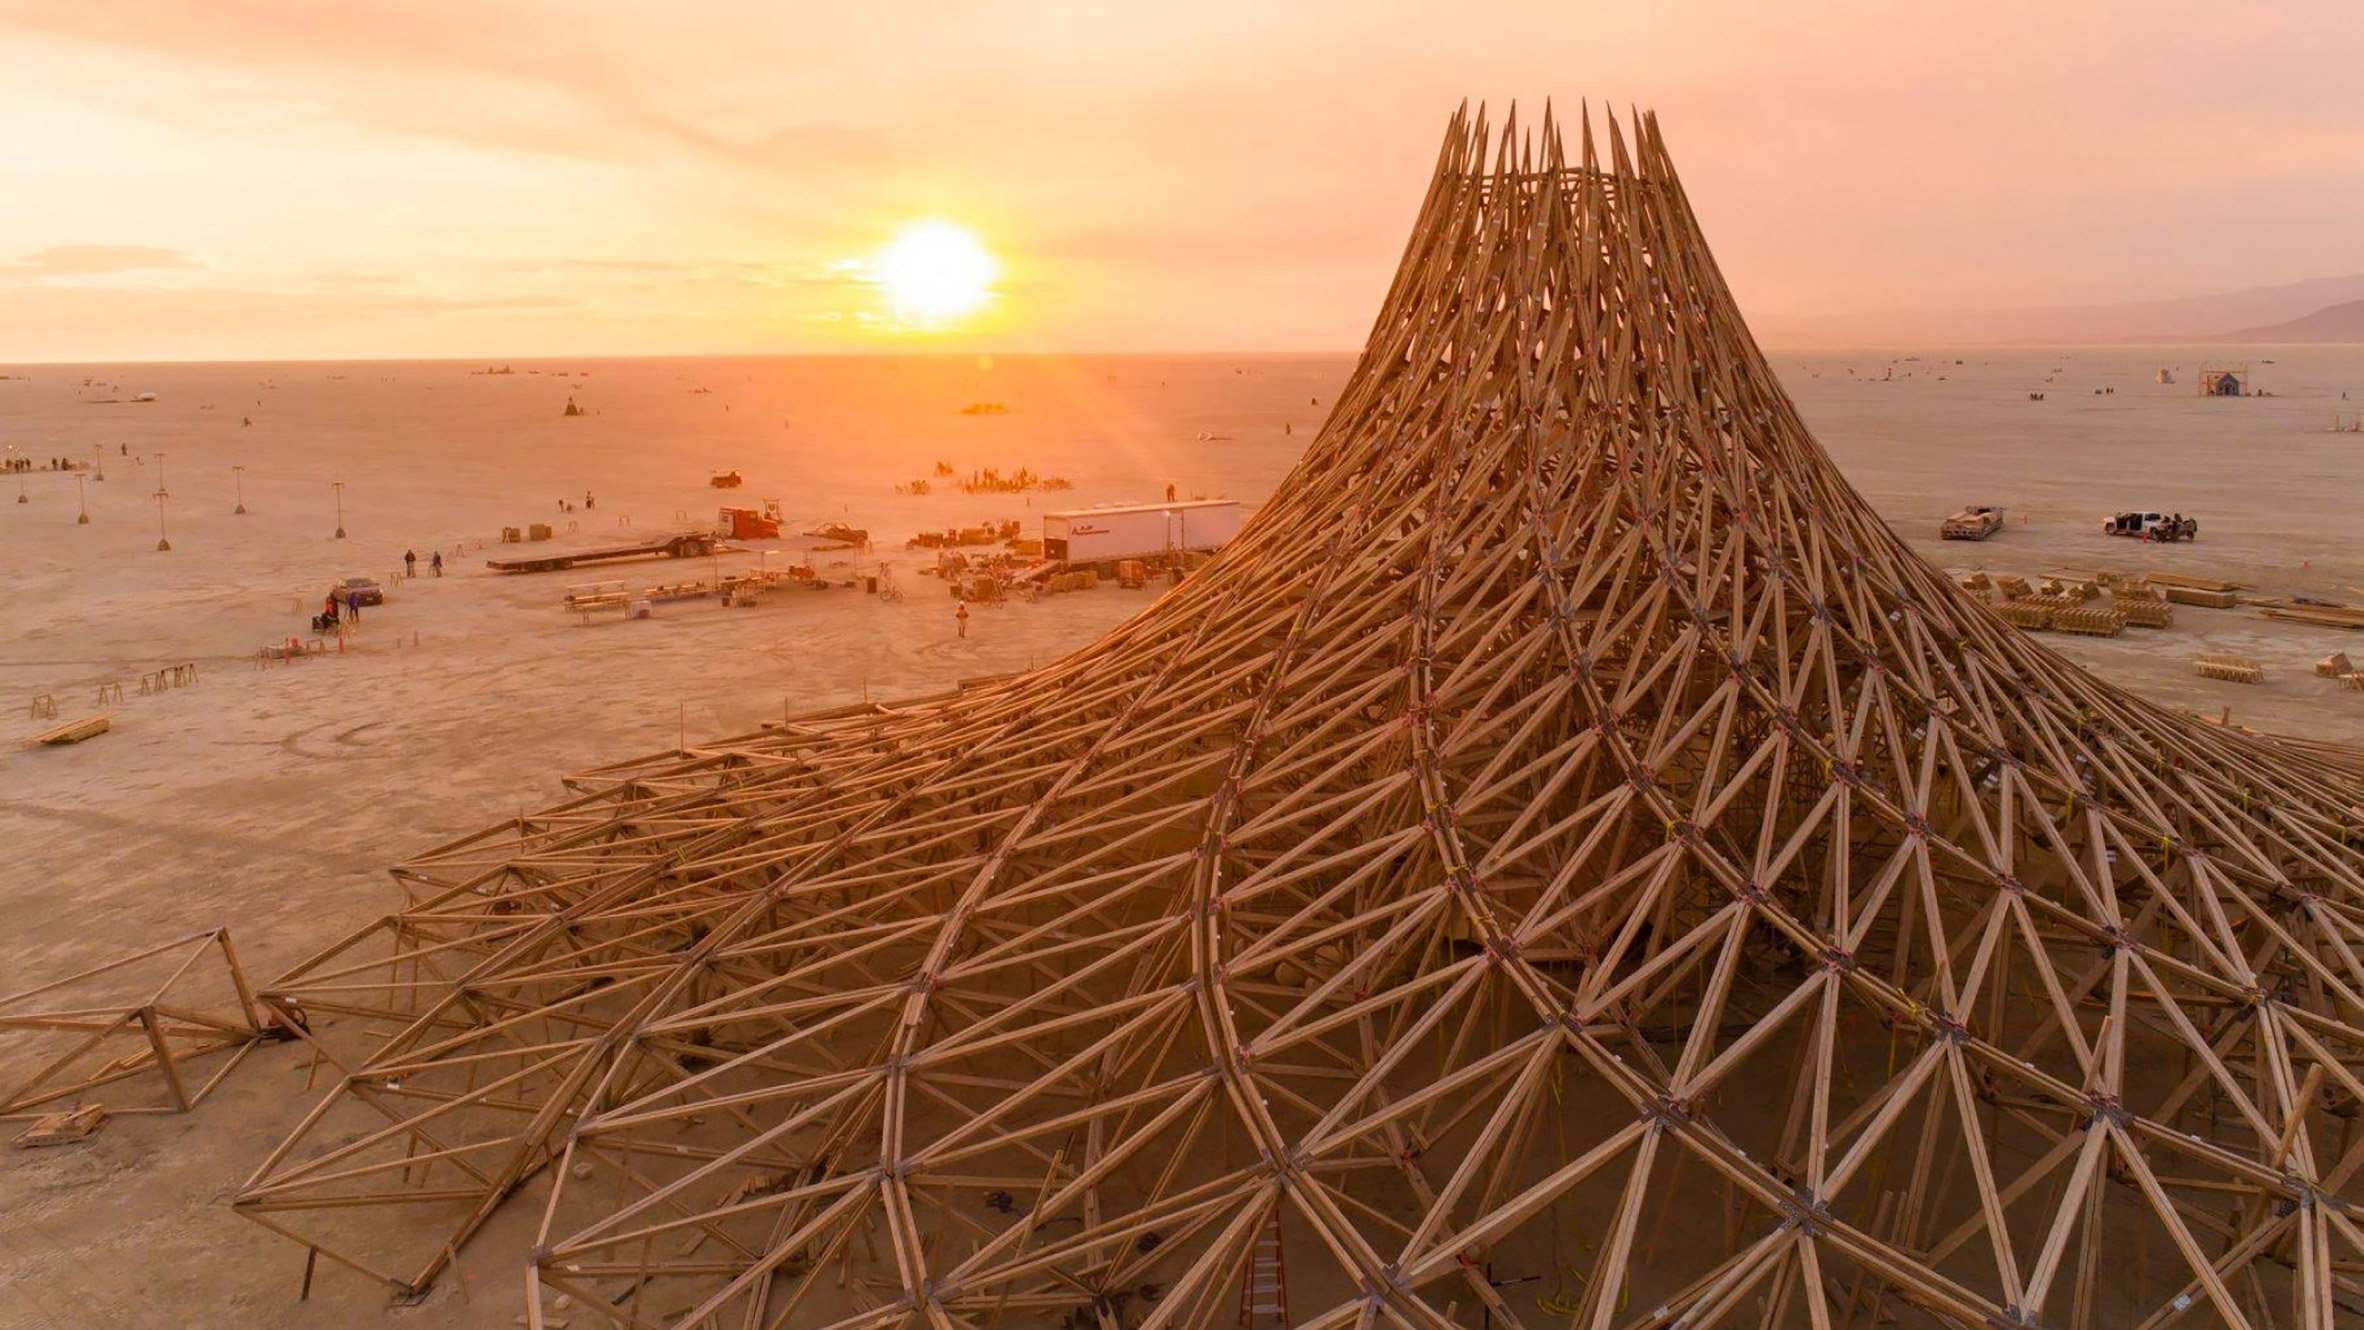 Galaxia temple at Burning Man festival by Mamou-Mani Architects